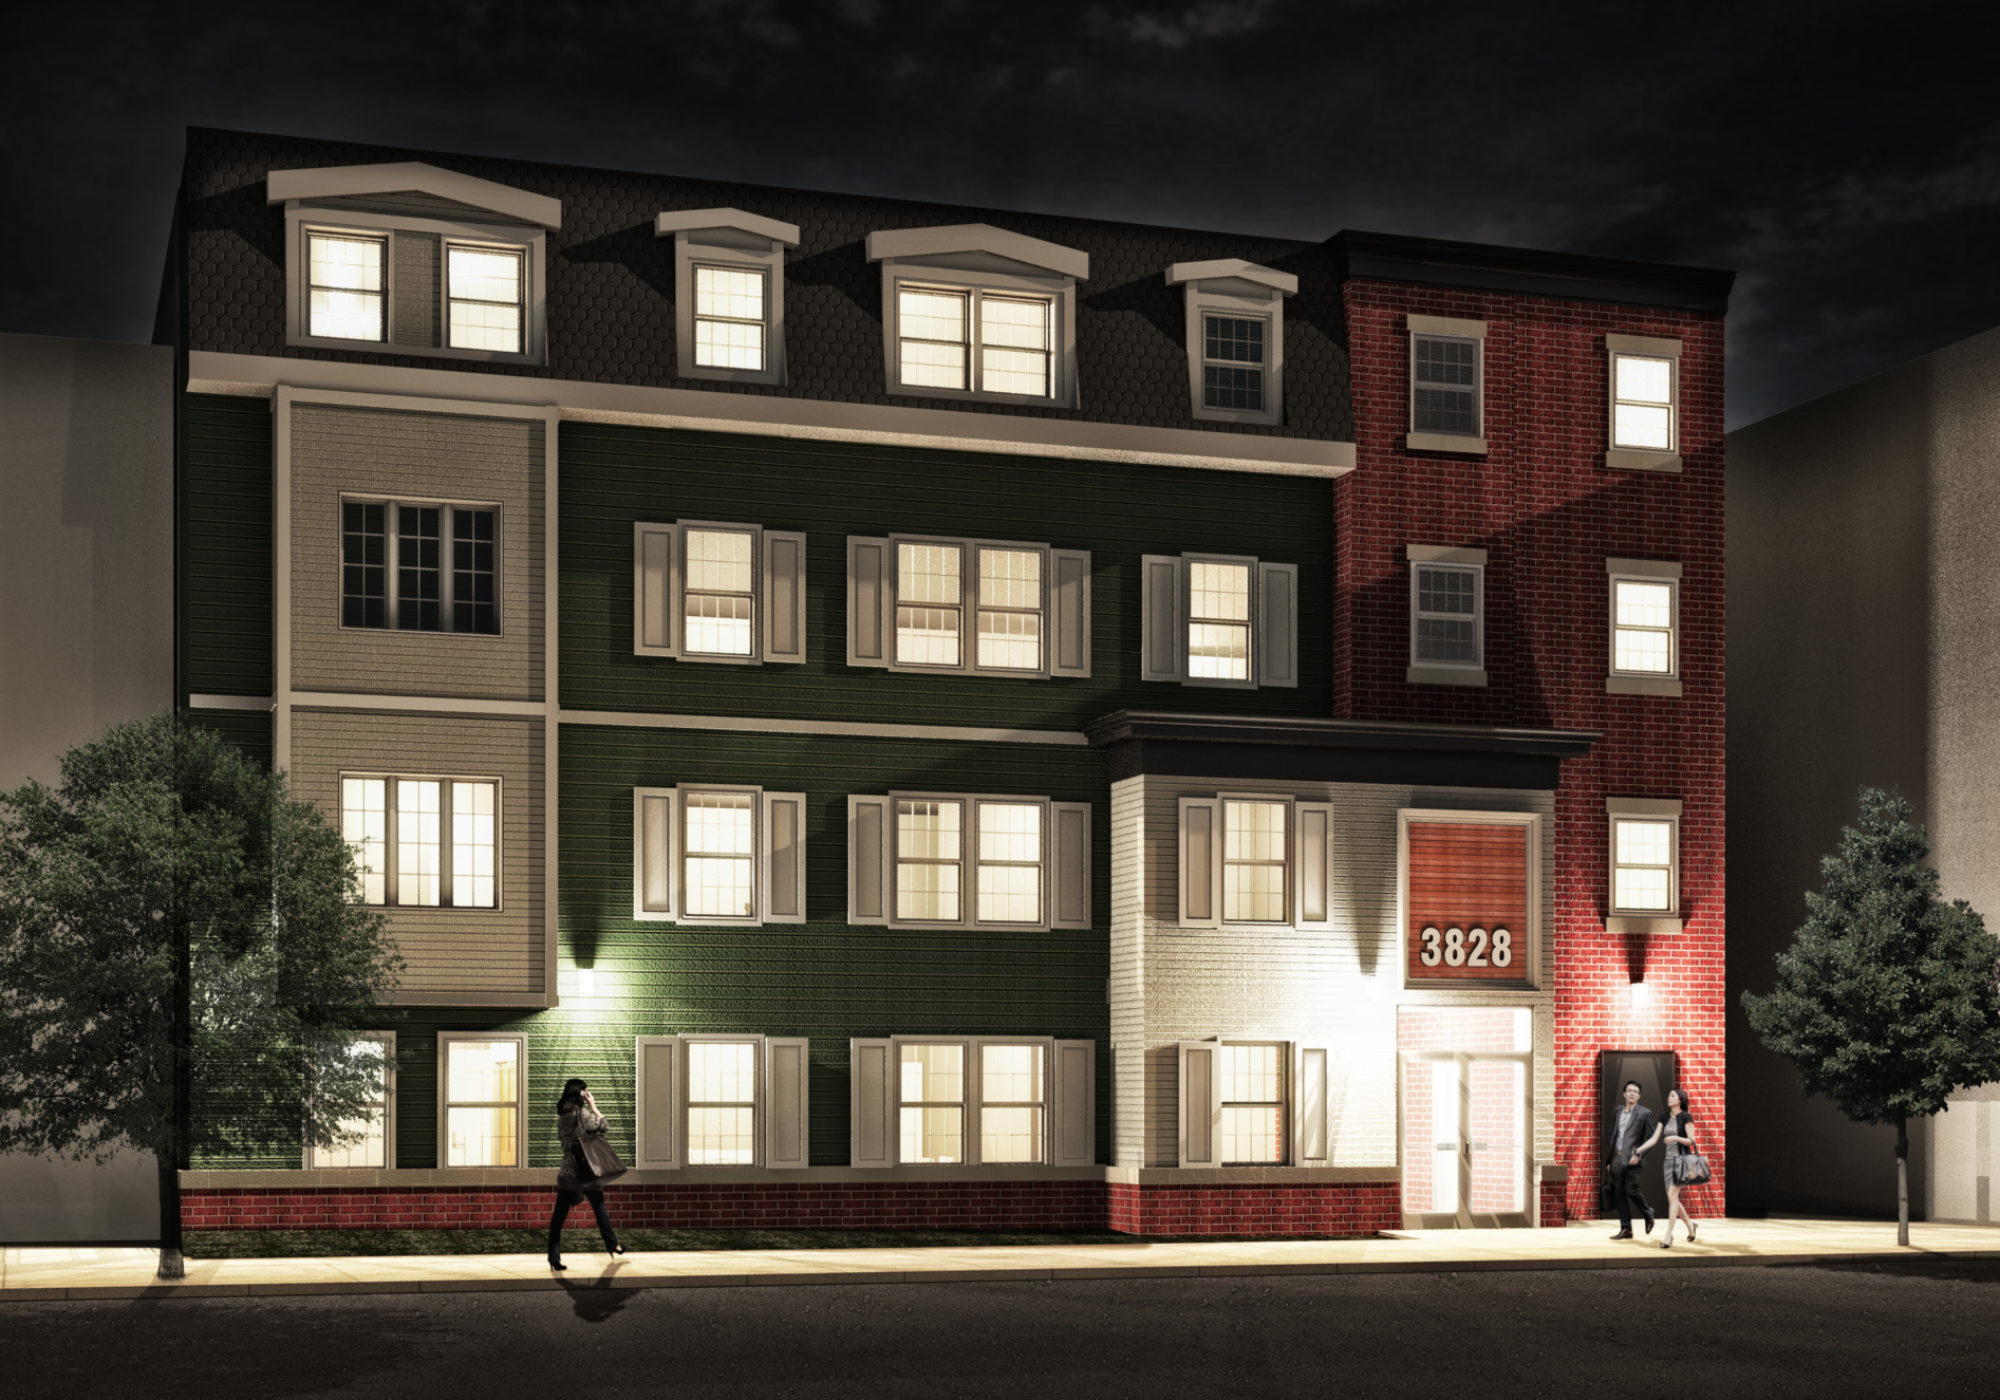 Exterior of Schuyler Building Apartments at 3828 Spring Garden Street at Night